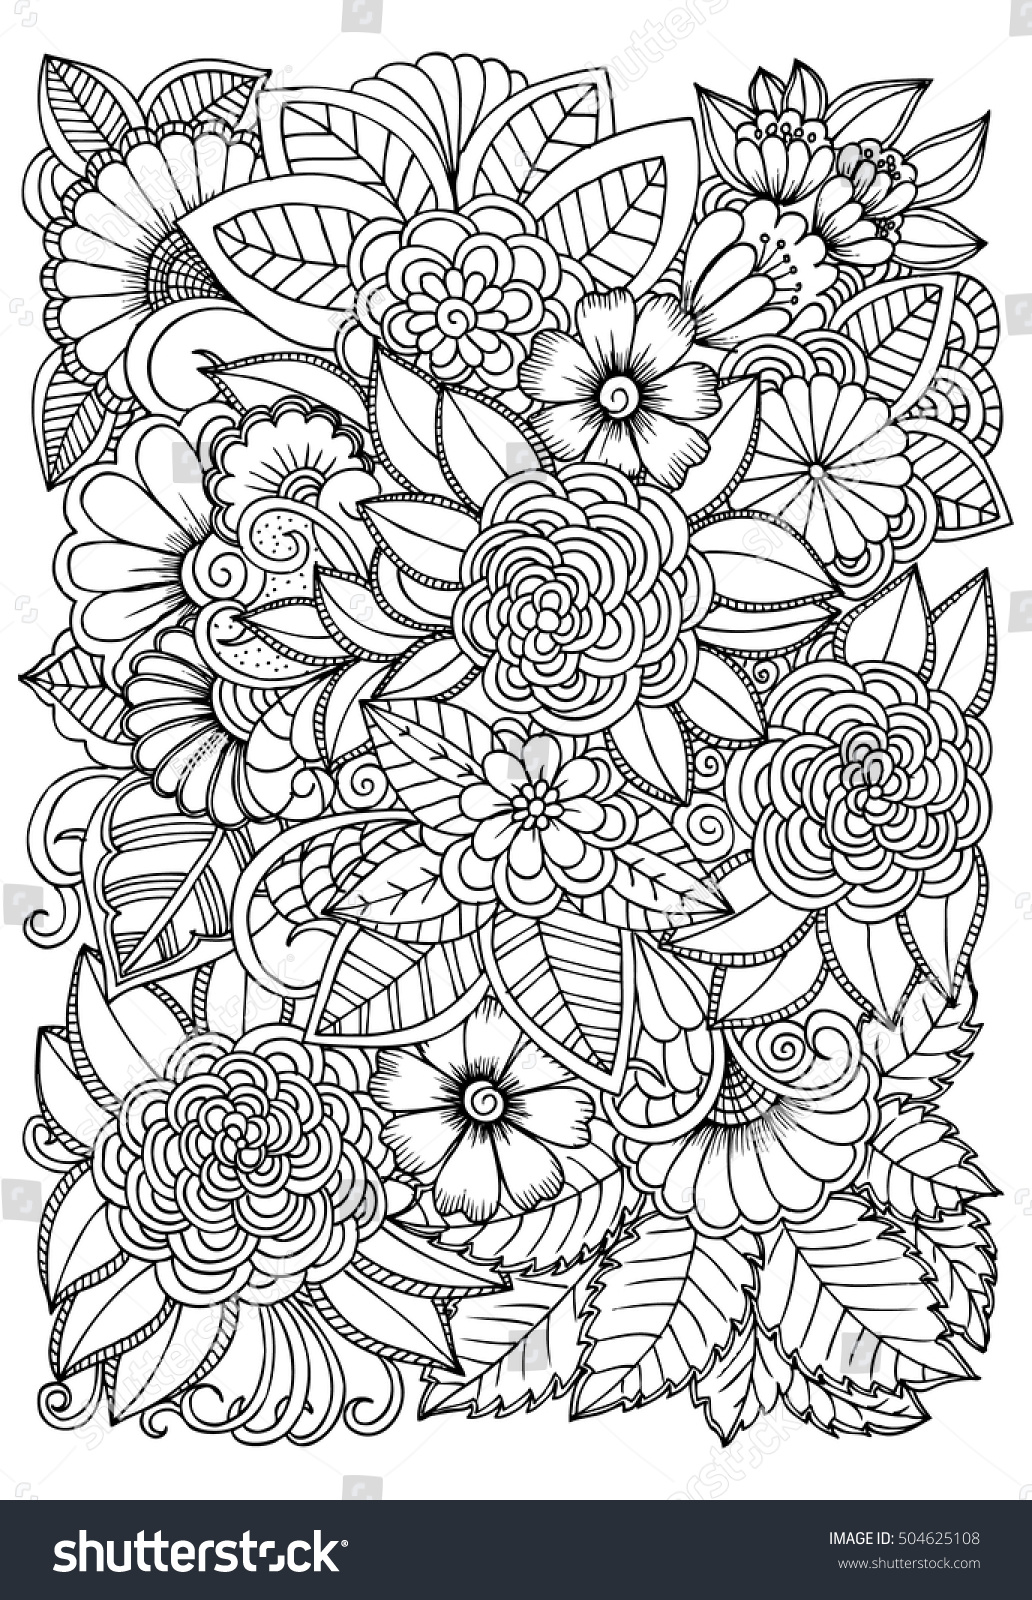 black white flower pattern coloring doodle stock vector 504625108